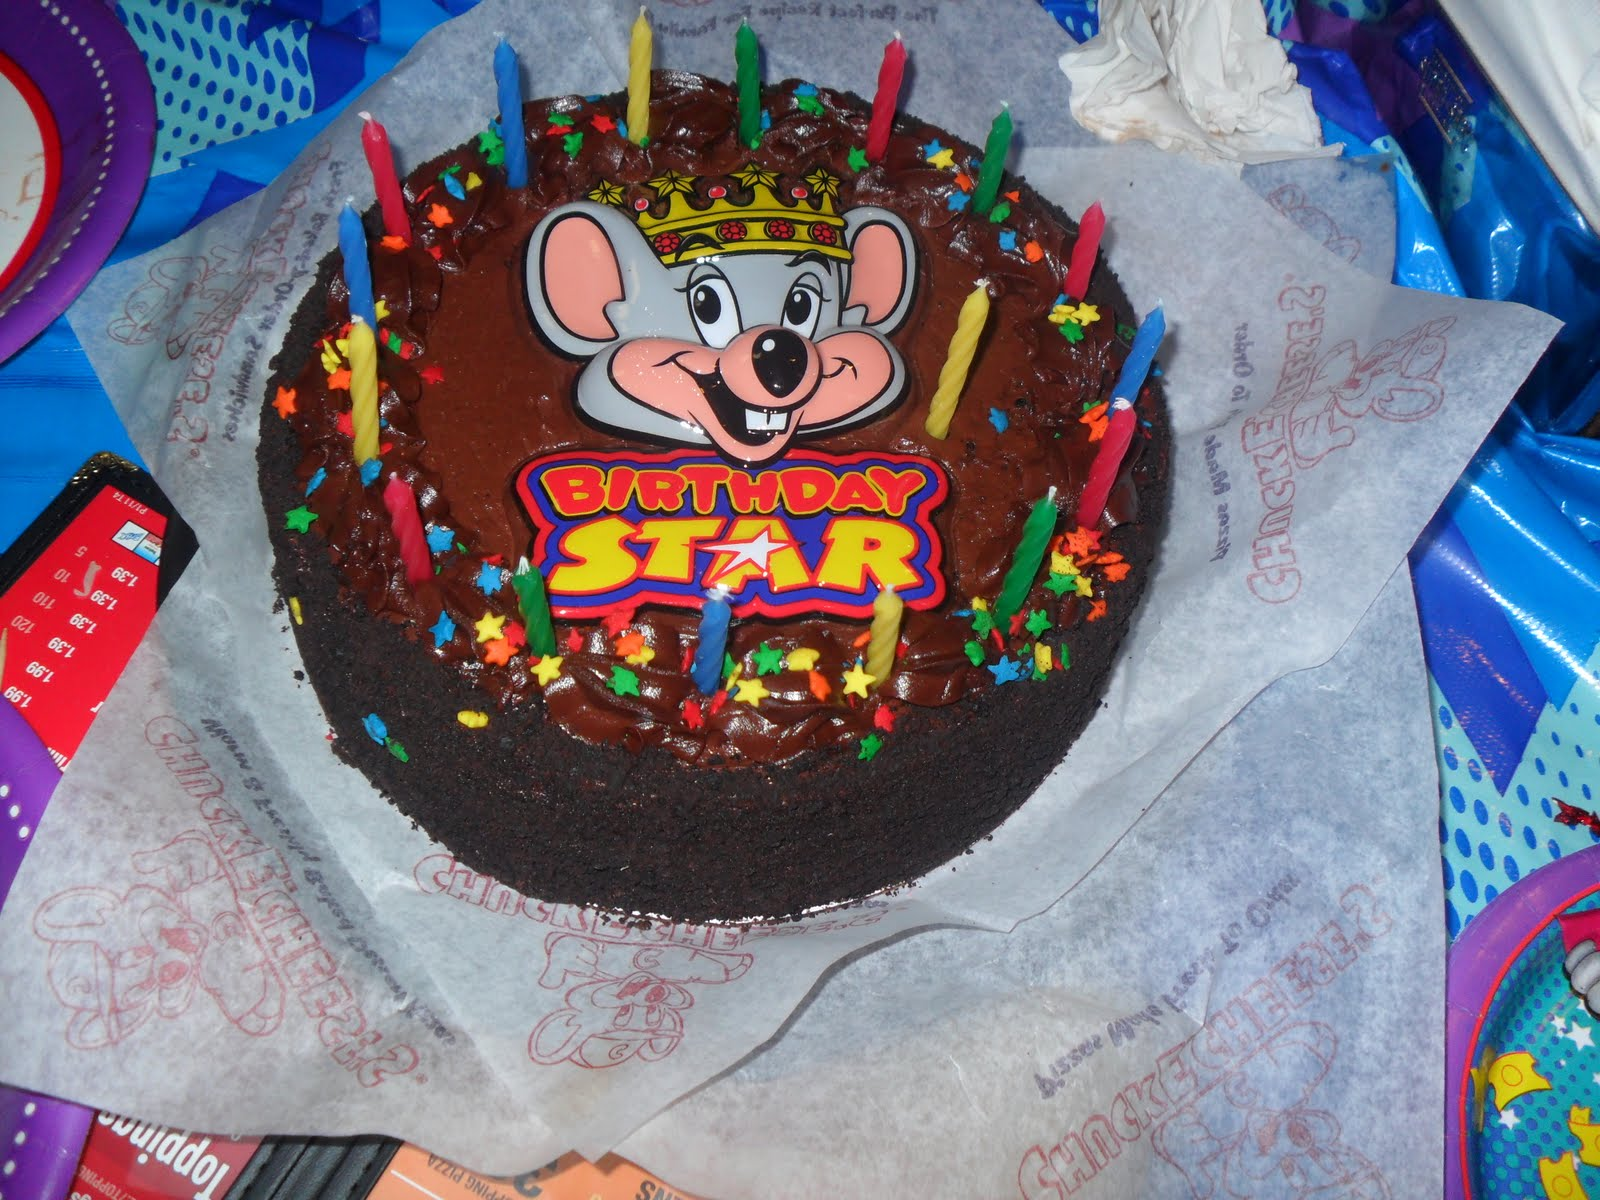 17 best images about chuck e cheese cake on 5 tips for the best